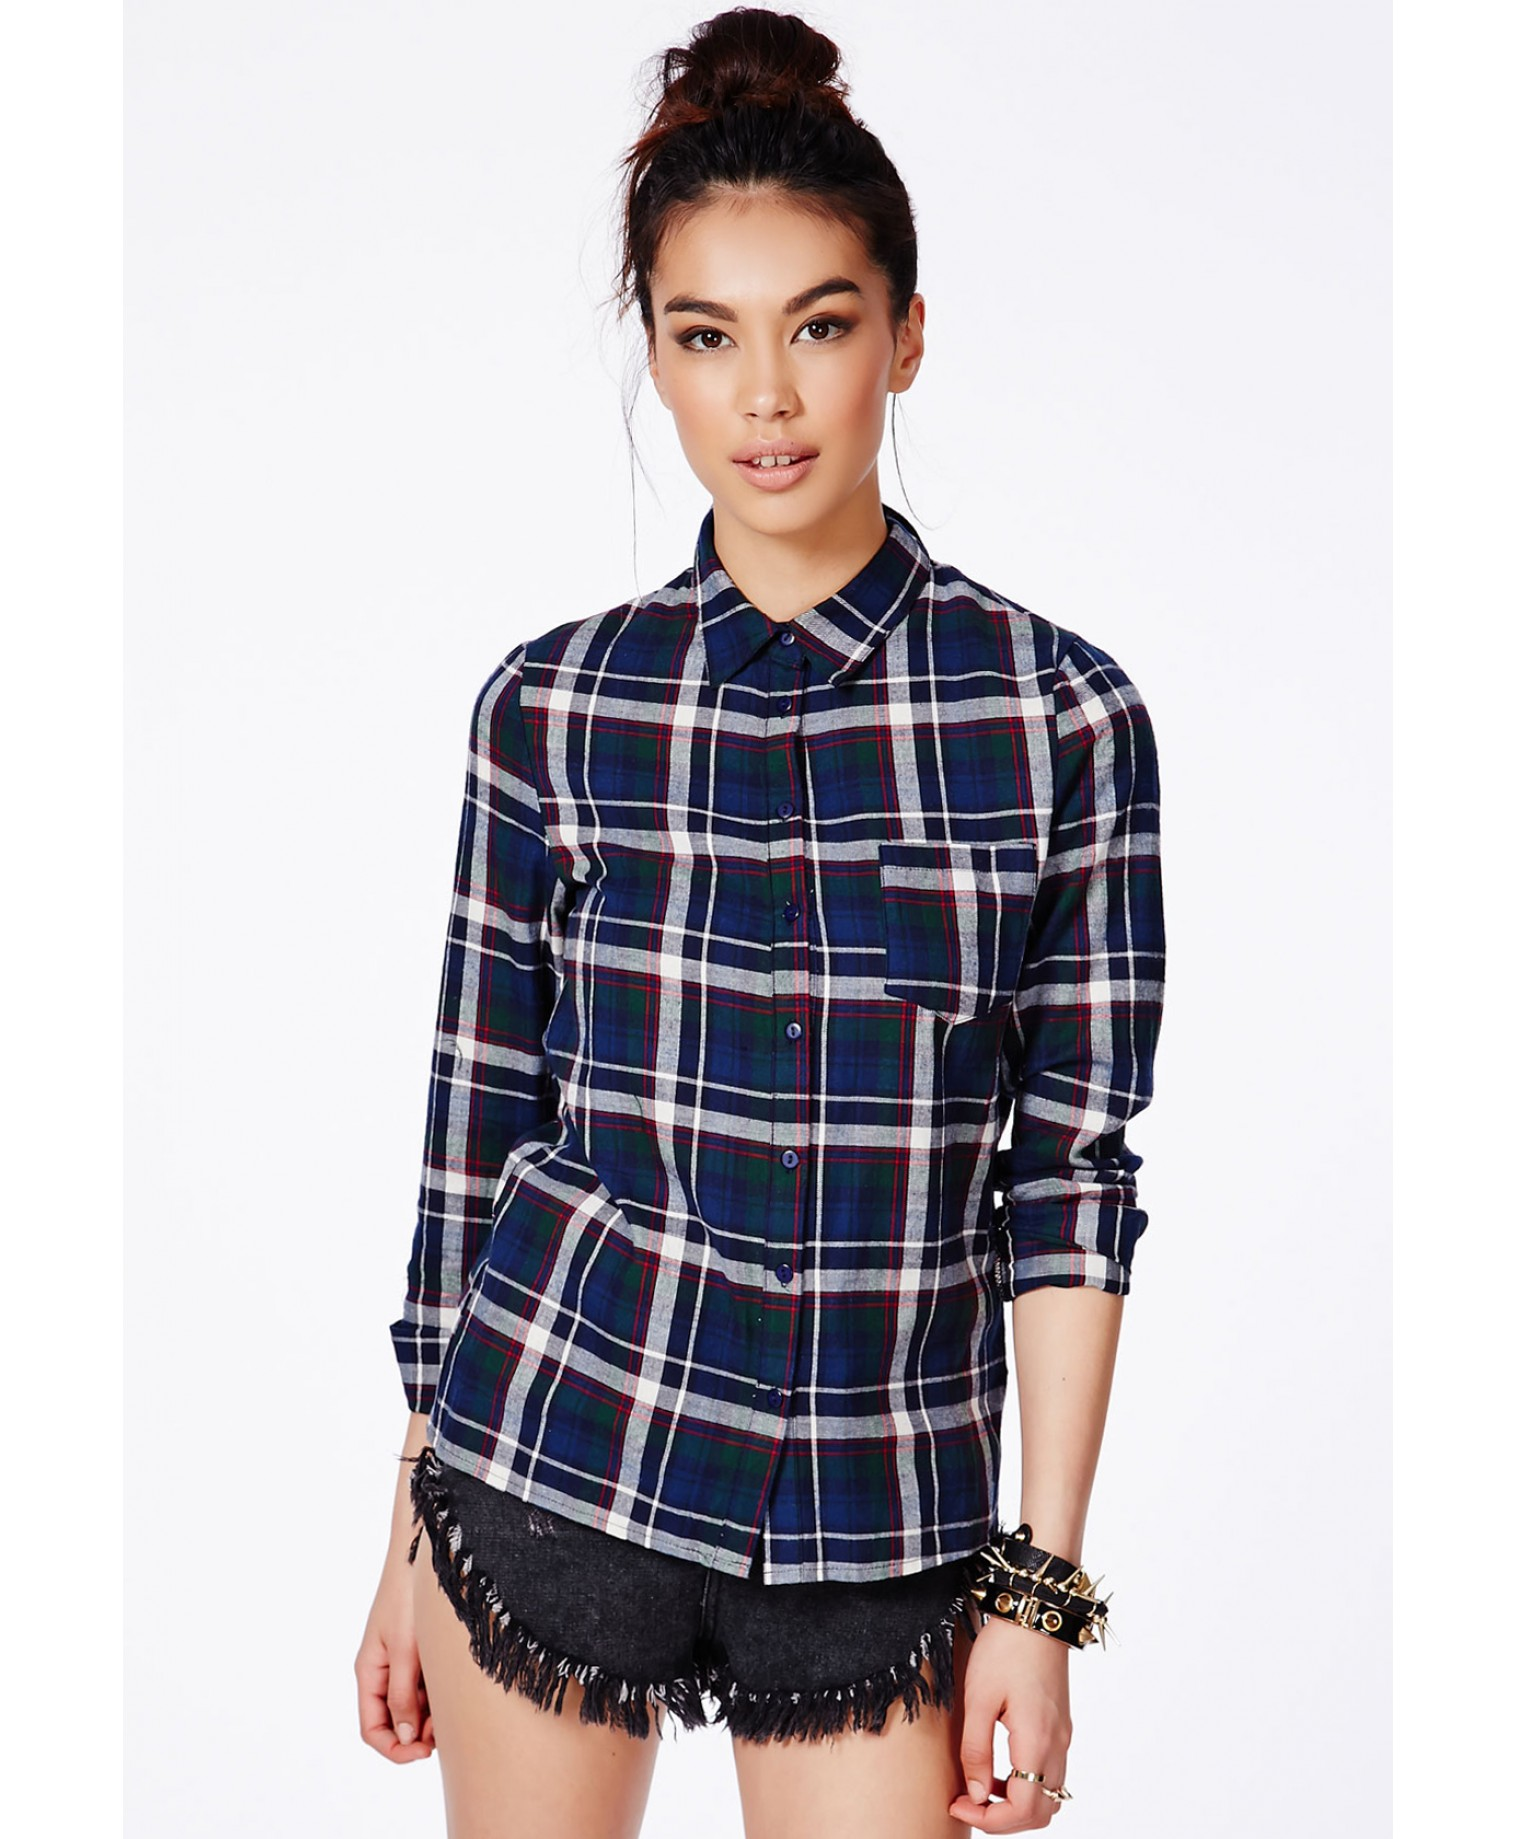 Missguided - Tolitka Green Tartan Shirt